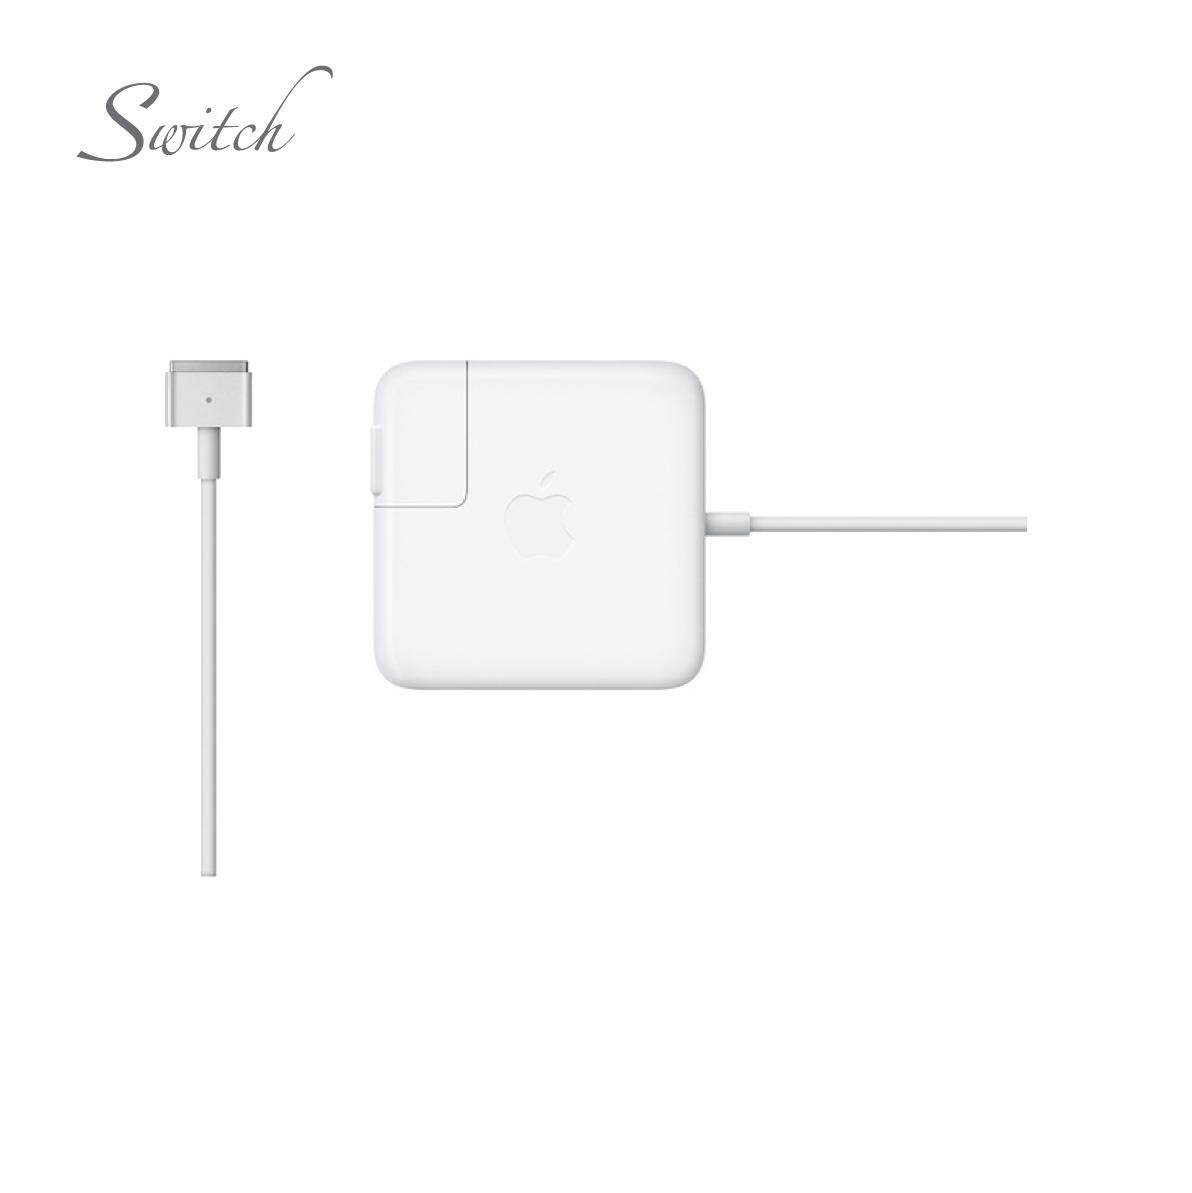 Apple Computers Laptops Price In Malaysia Best Macbook Air 13 Mmgf2 Silver 45w Magsafe 2 Power Adapter For